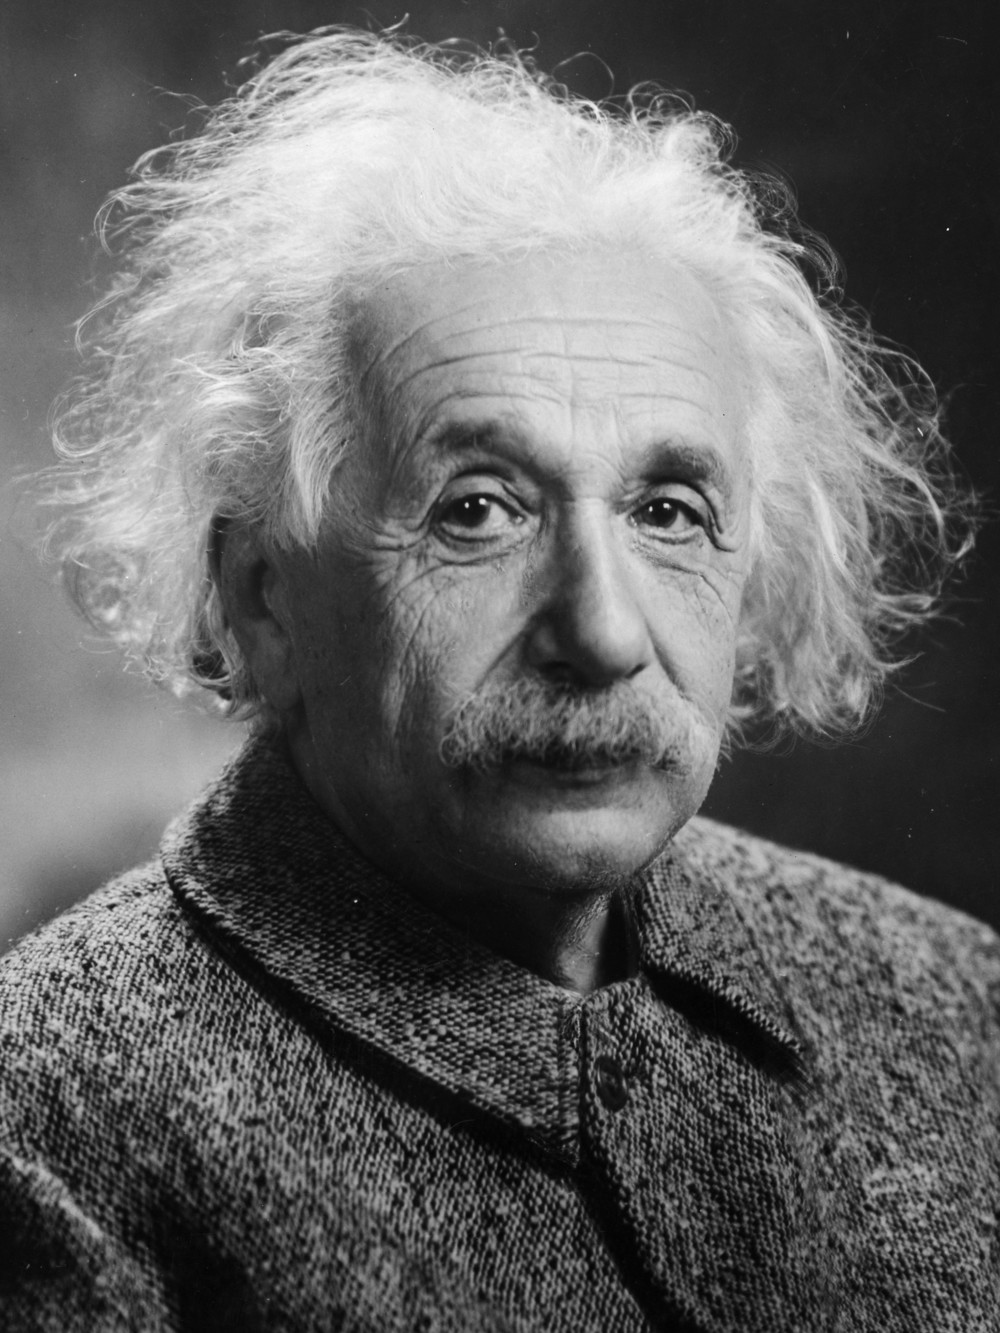 Albert Einstein. Credit: Orren Jack Turner via Wikimedia Commons